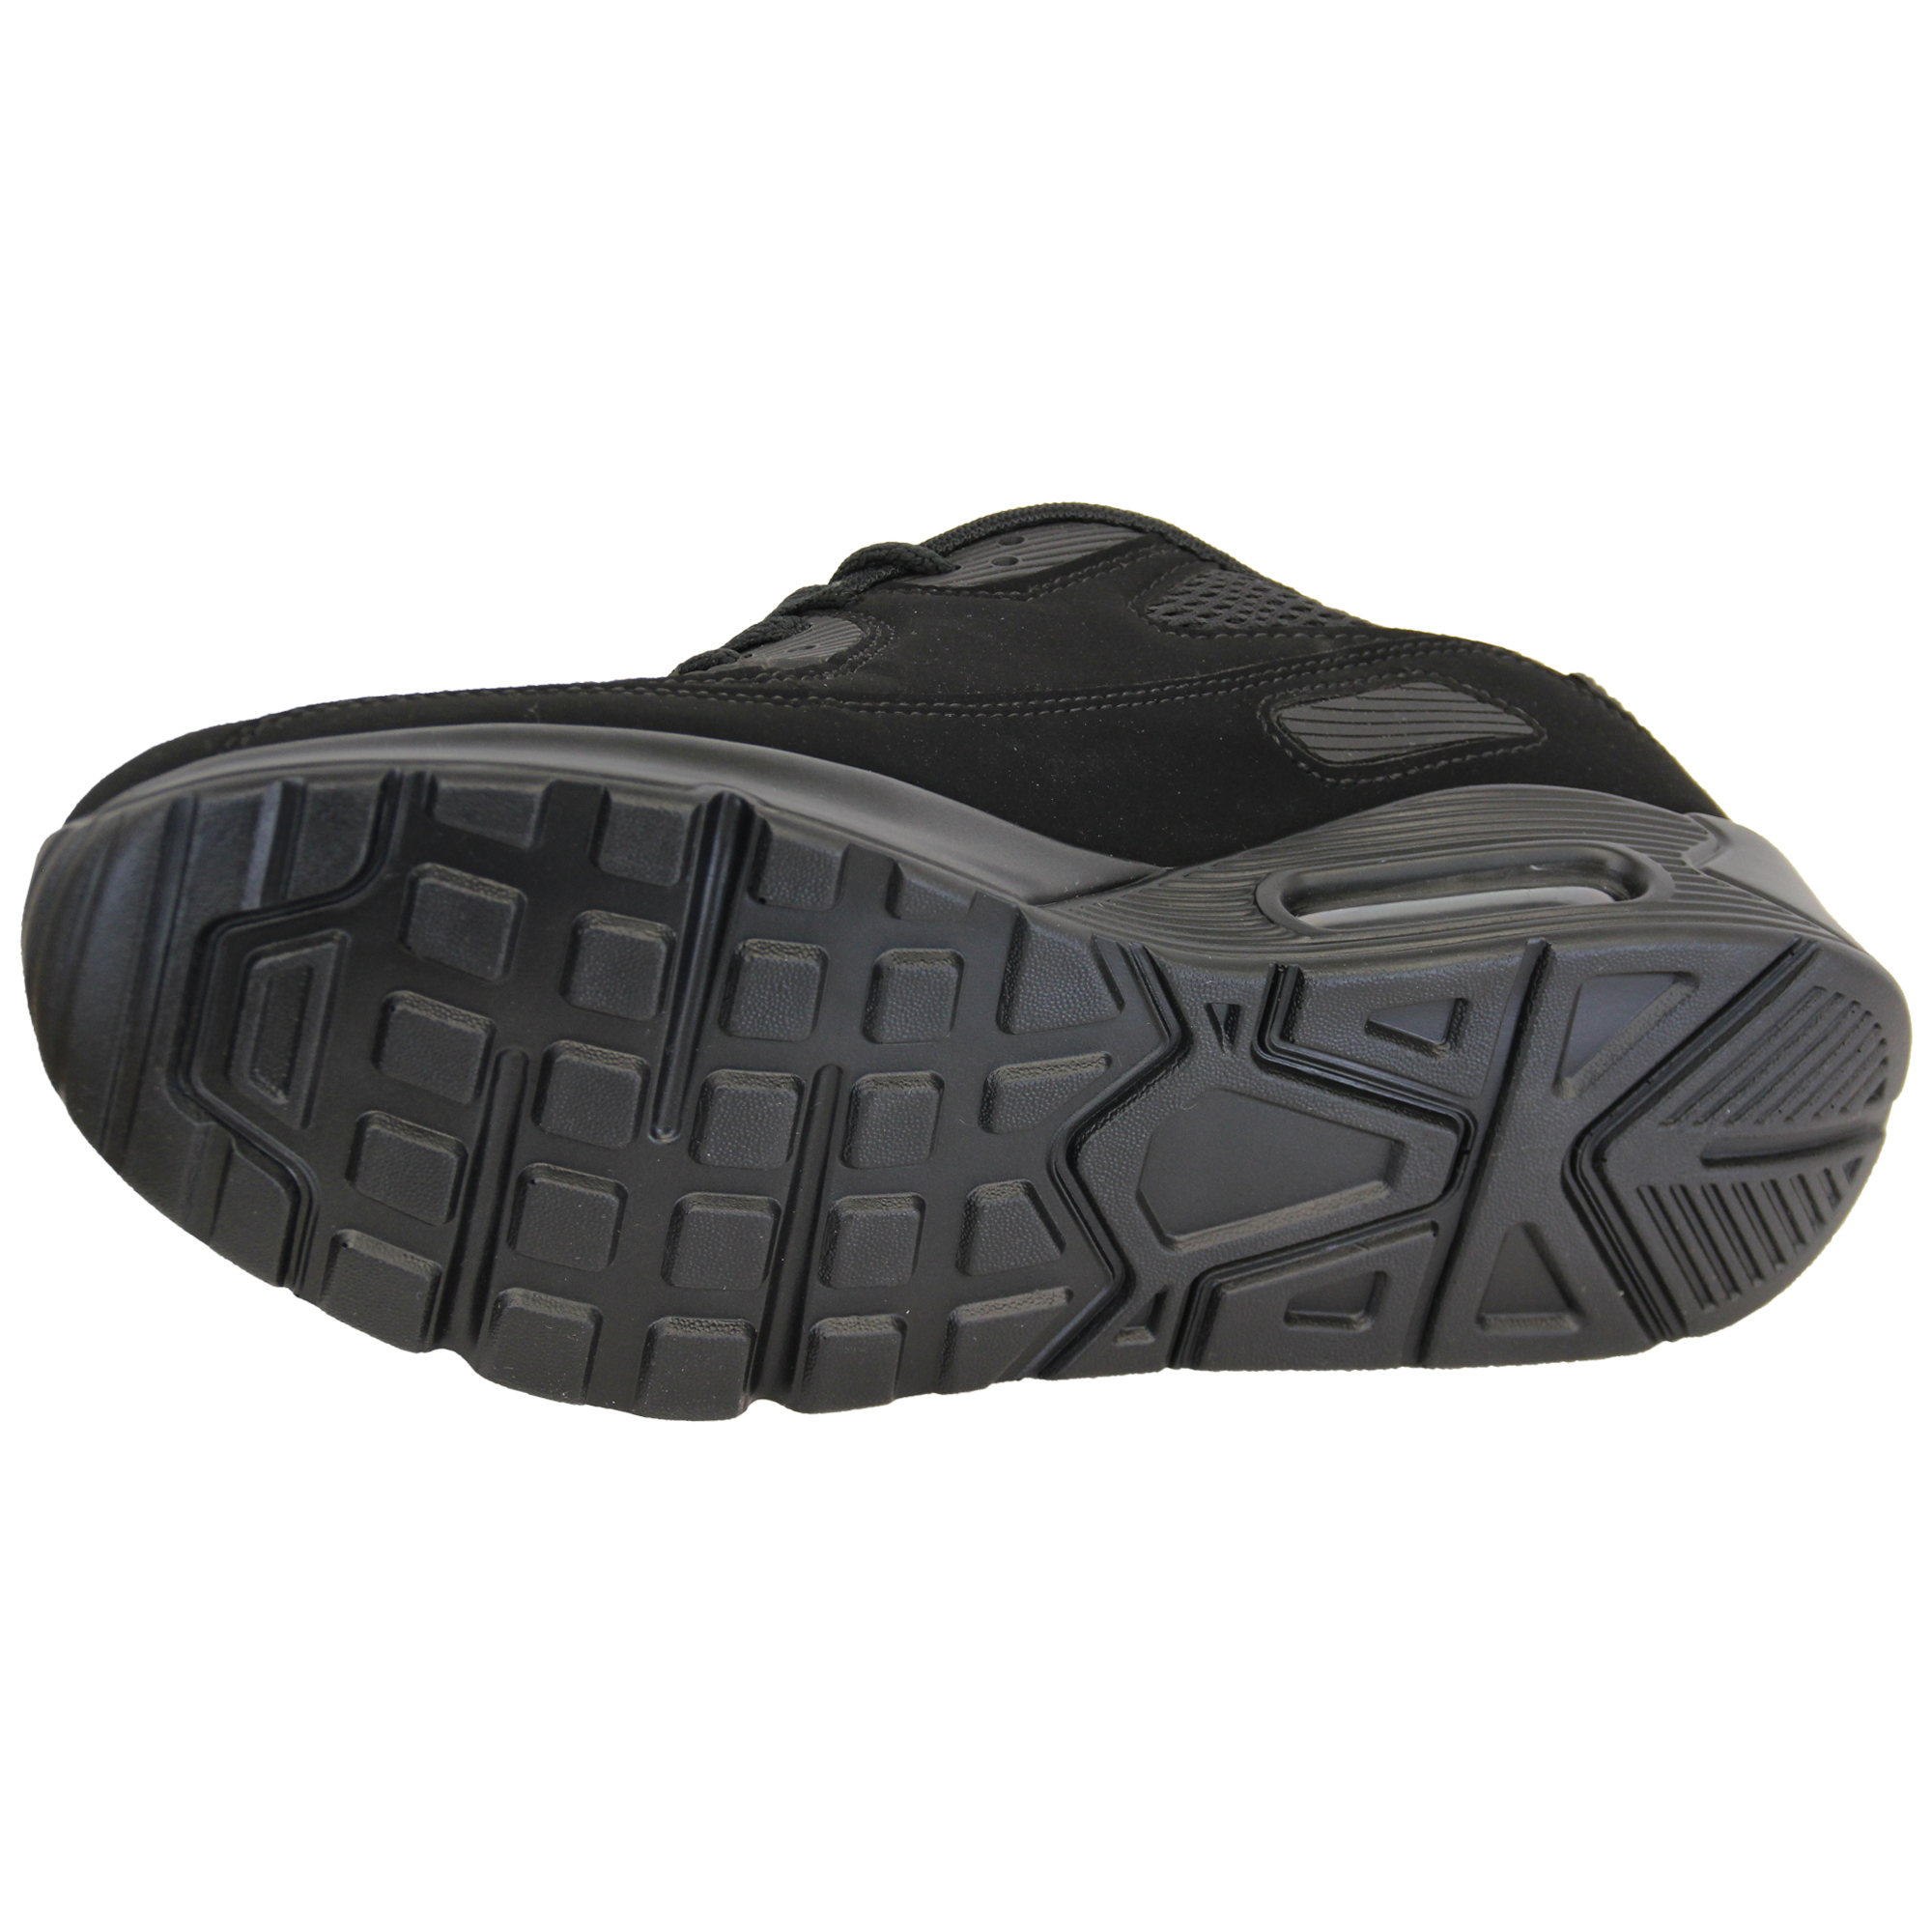 Mens-Bubble-Trainers-Lace-Up-Running-Shoes-Mesh-Jogging-Sports-Gym-Casual-New thumbnail 4